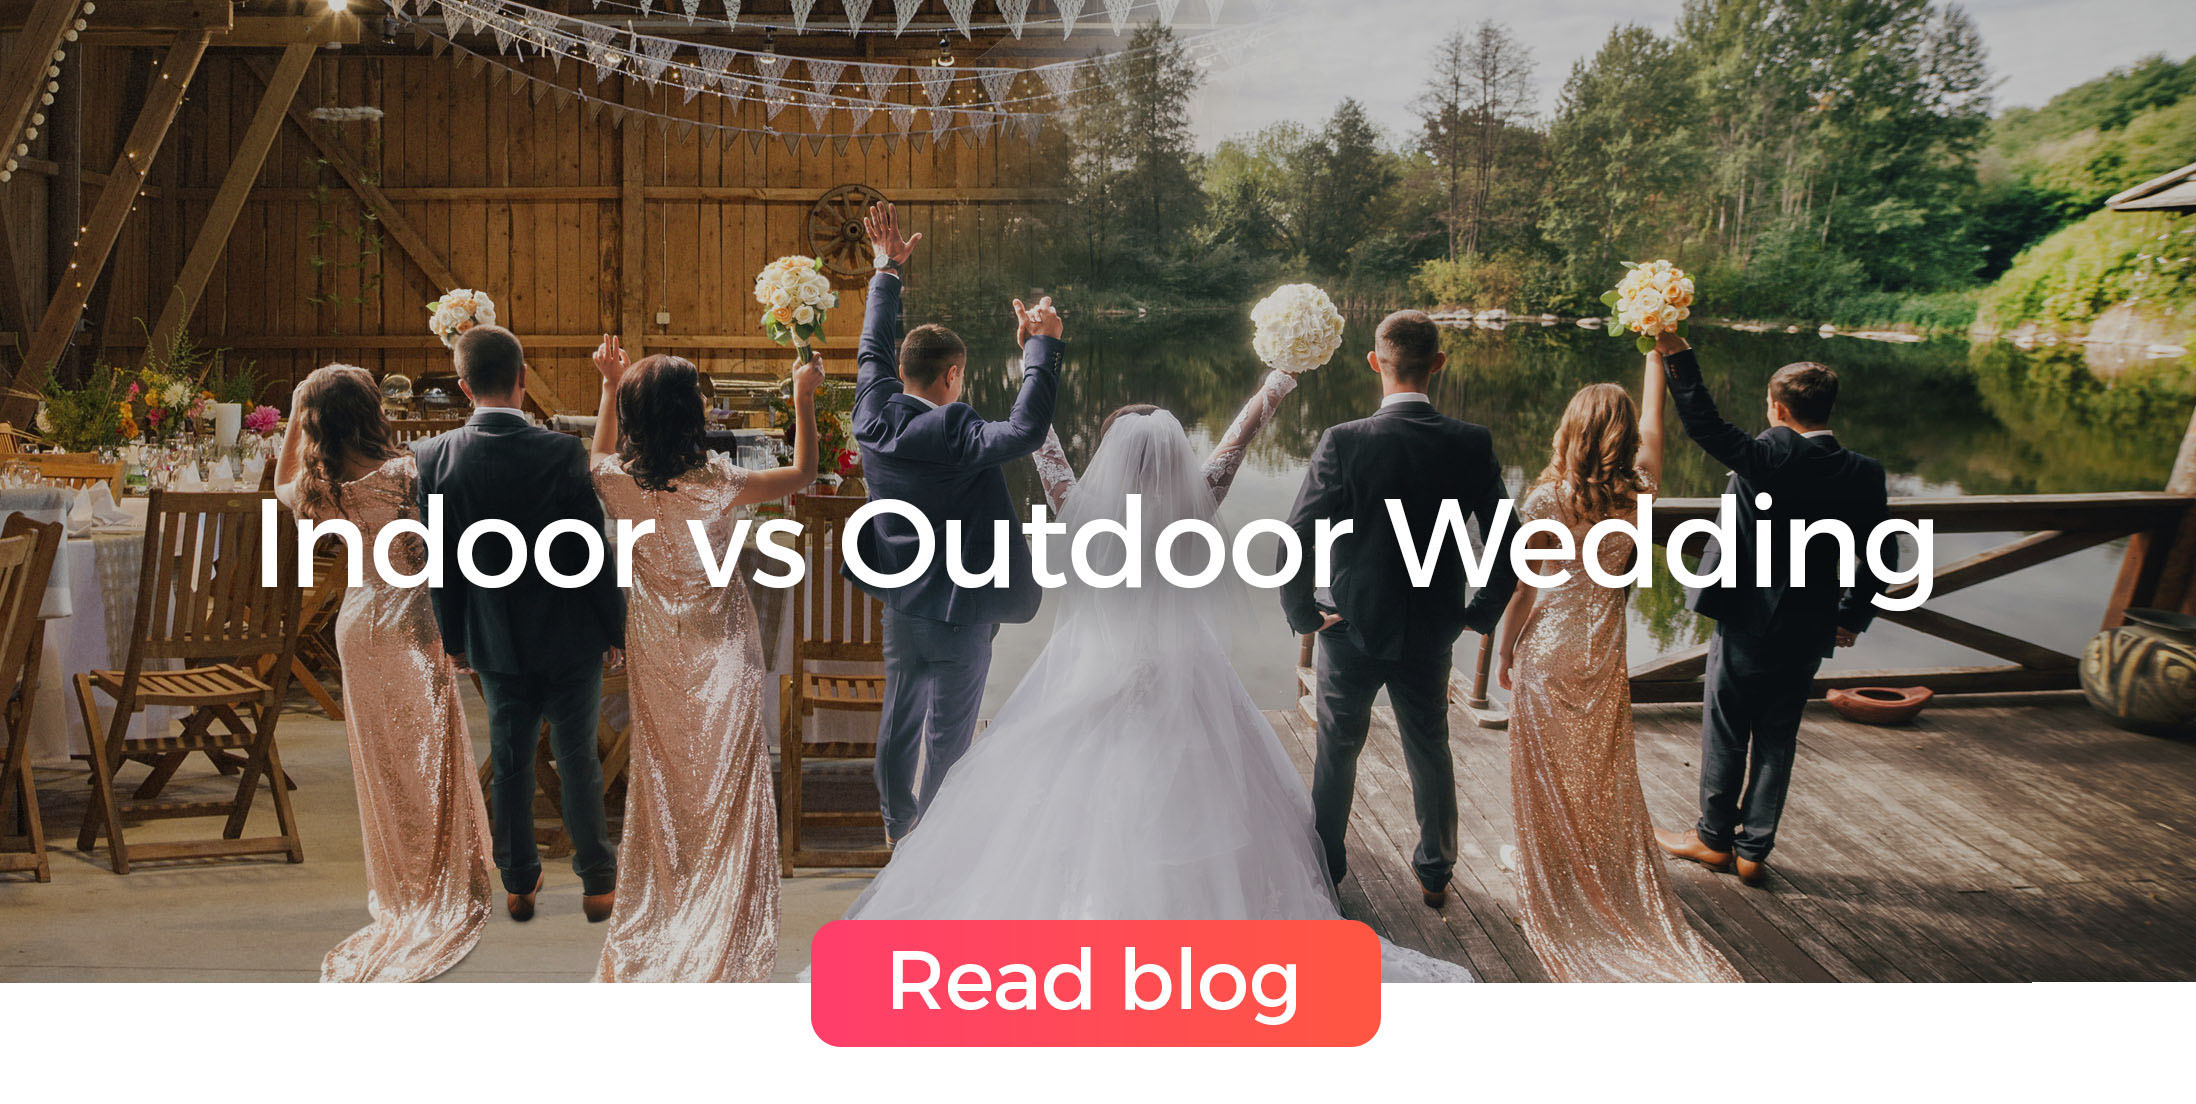 Indoor vs Outdoor Wedding